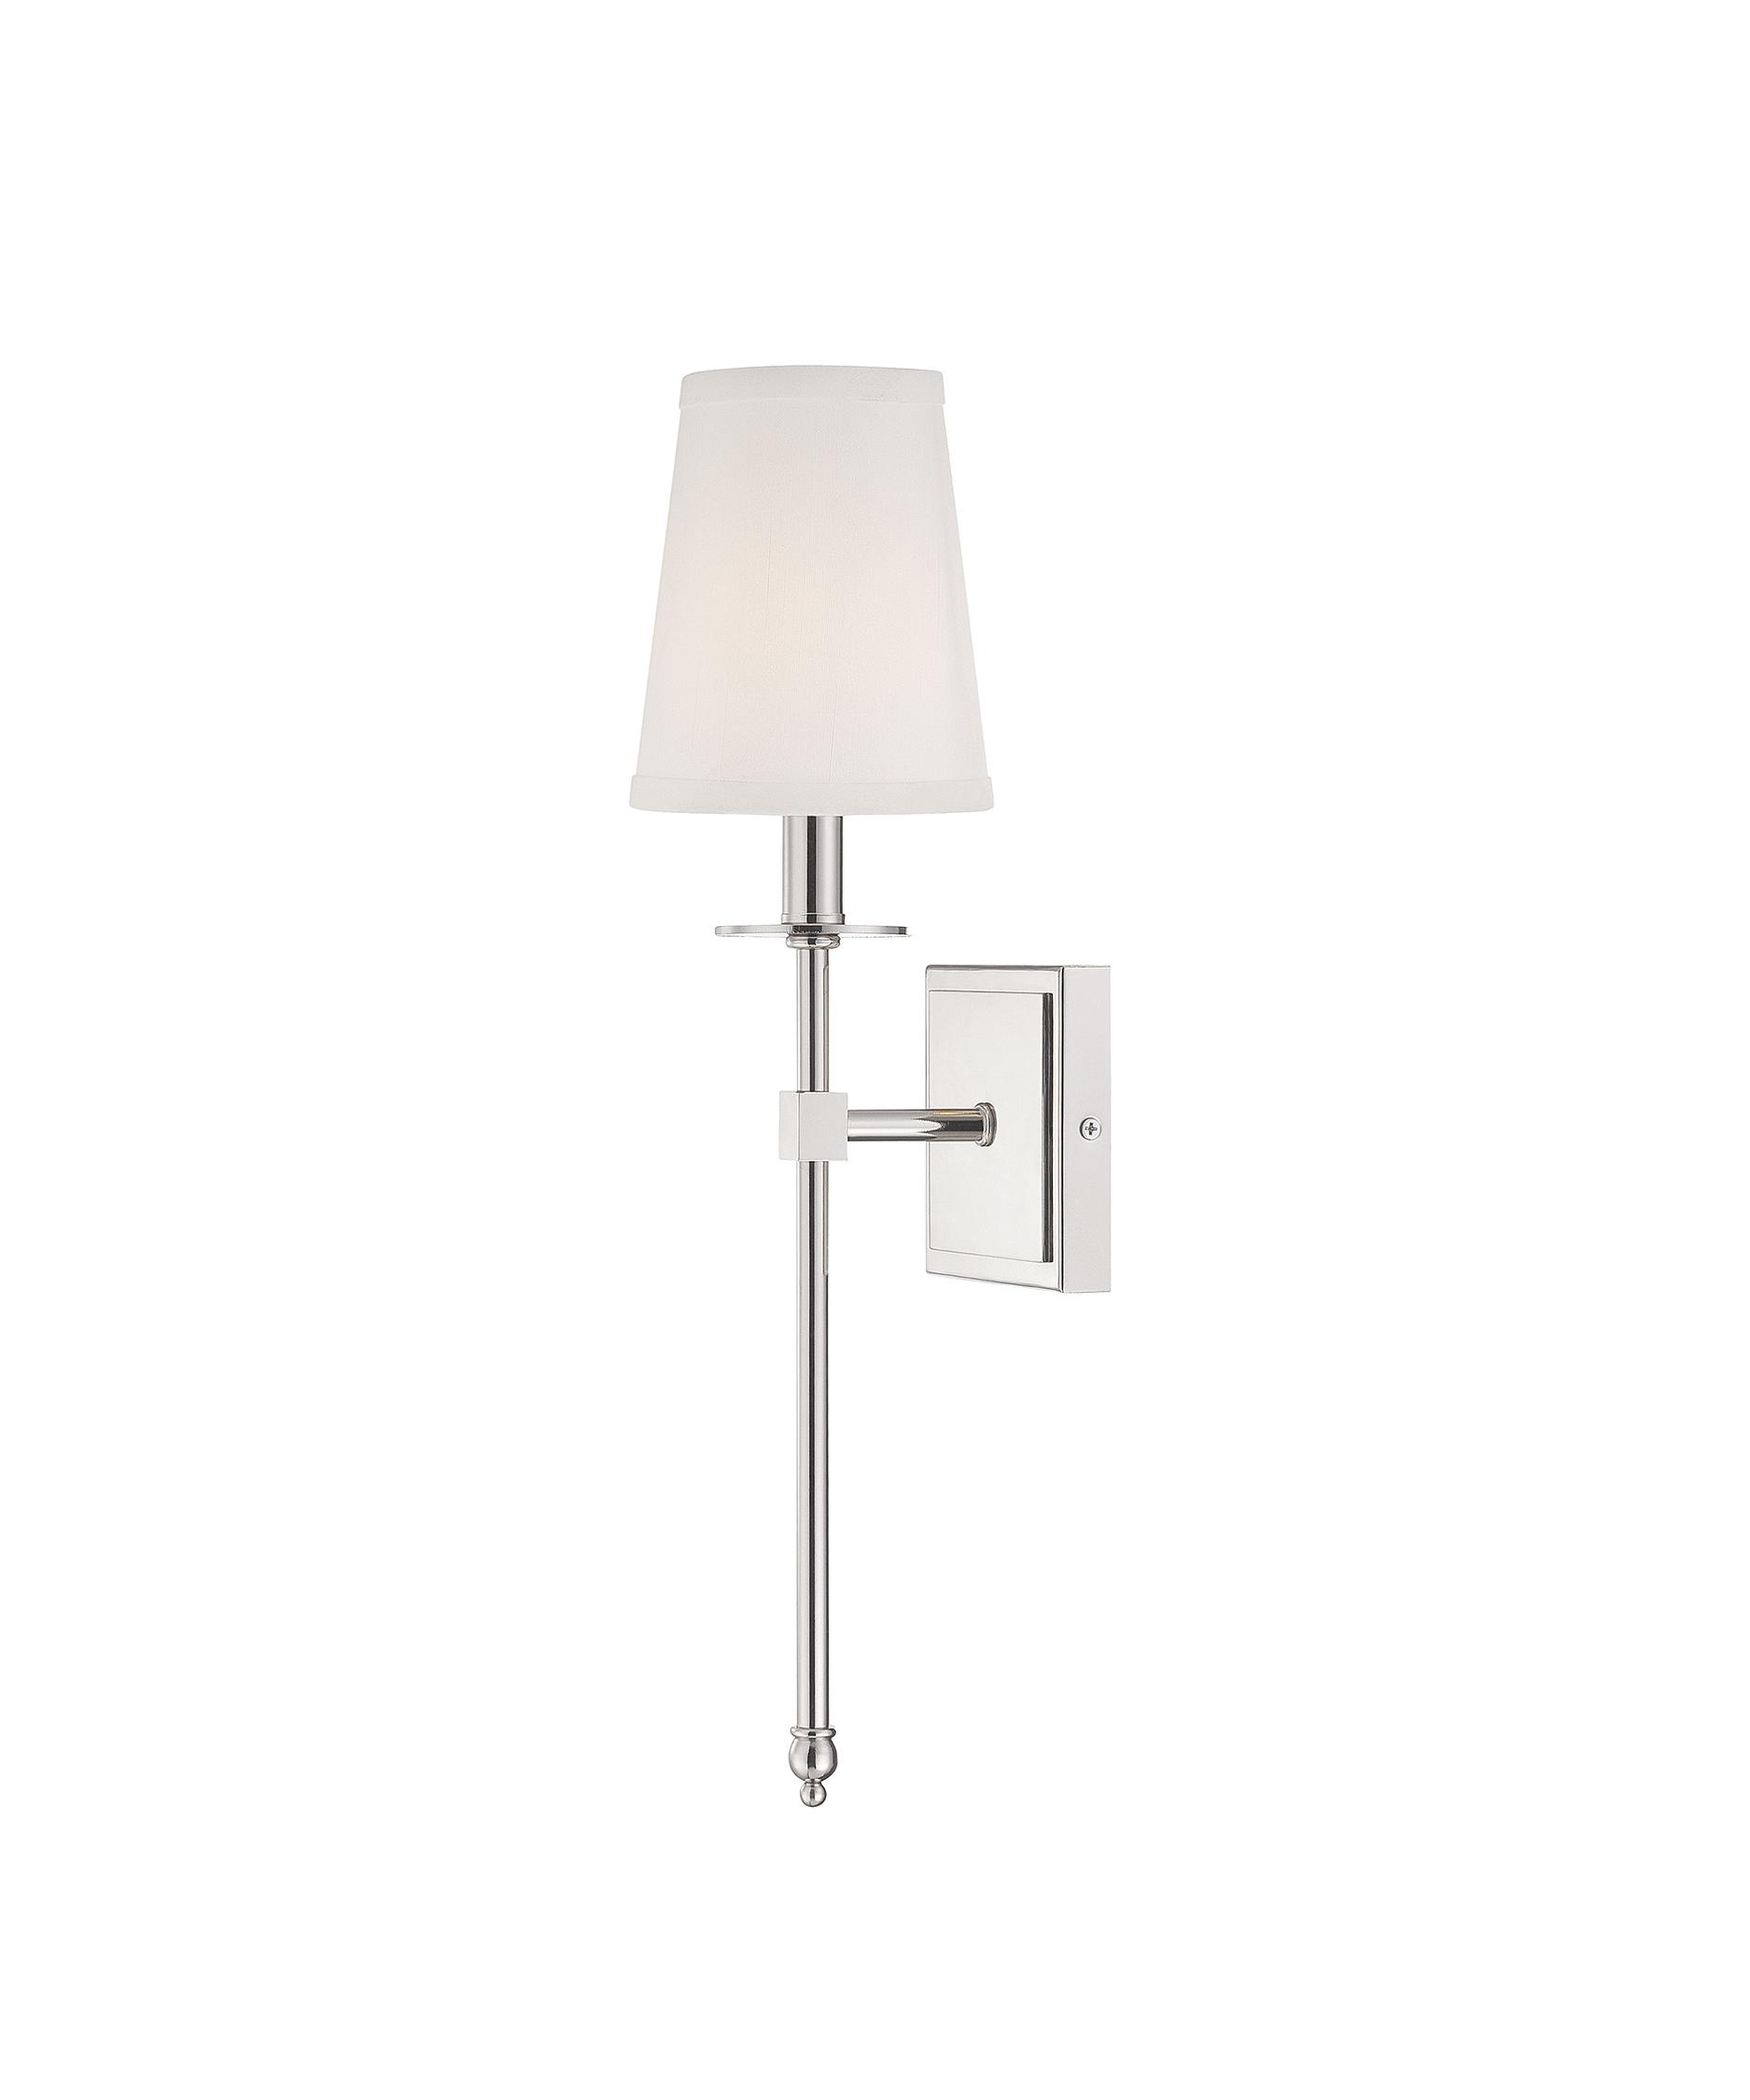 Shown In Polished Nickel Finish And Soft White Fabric Shade